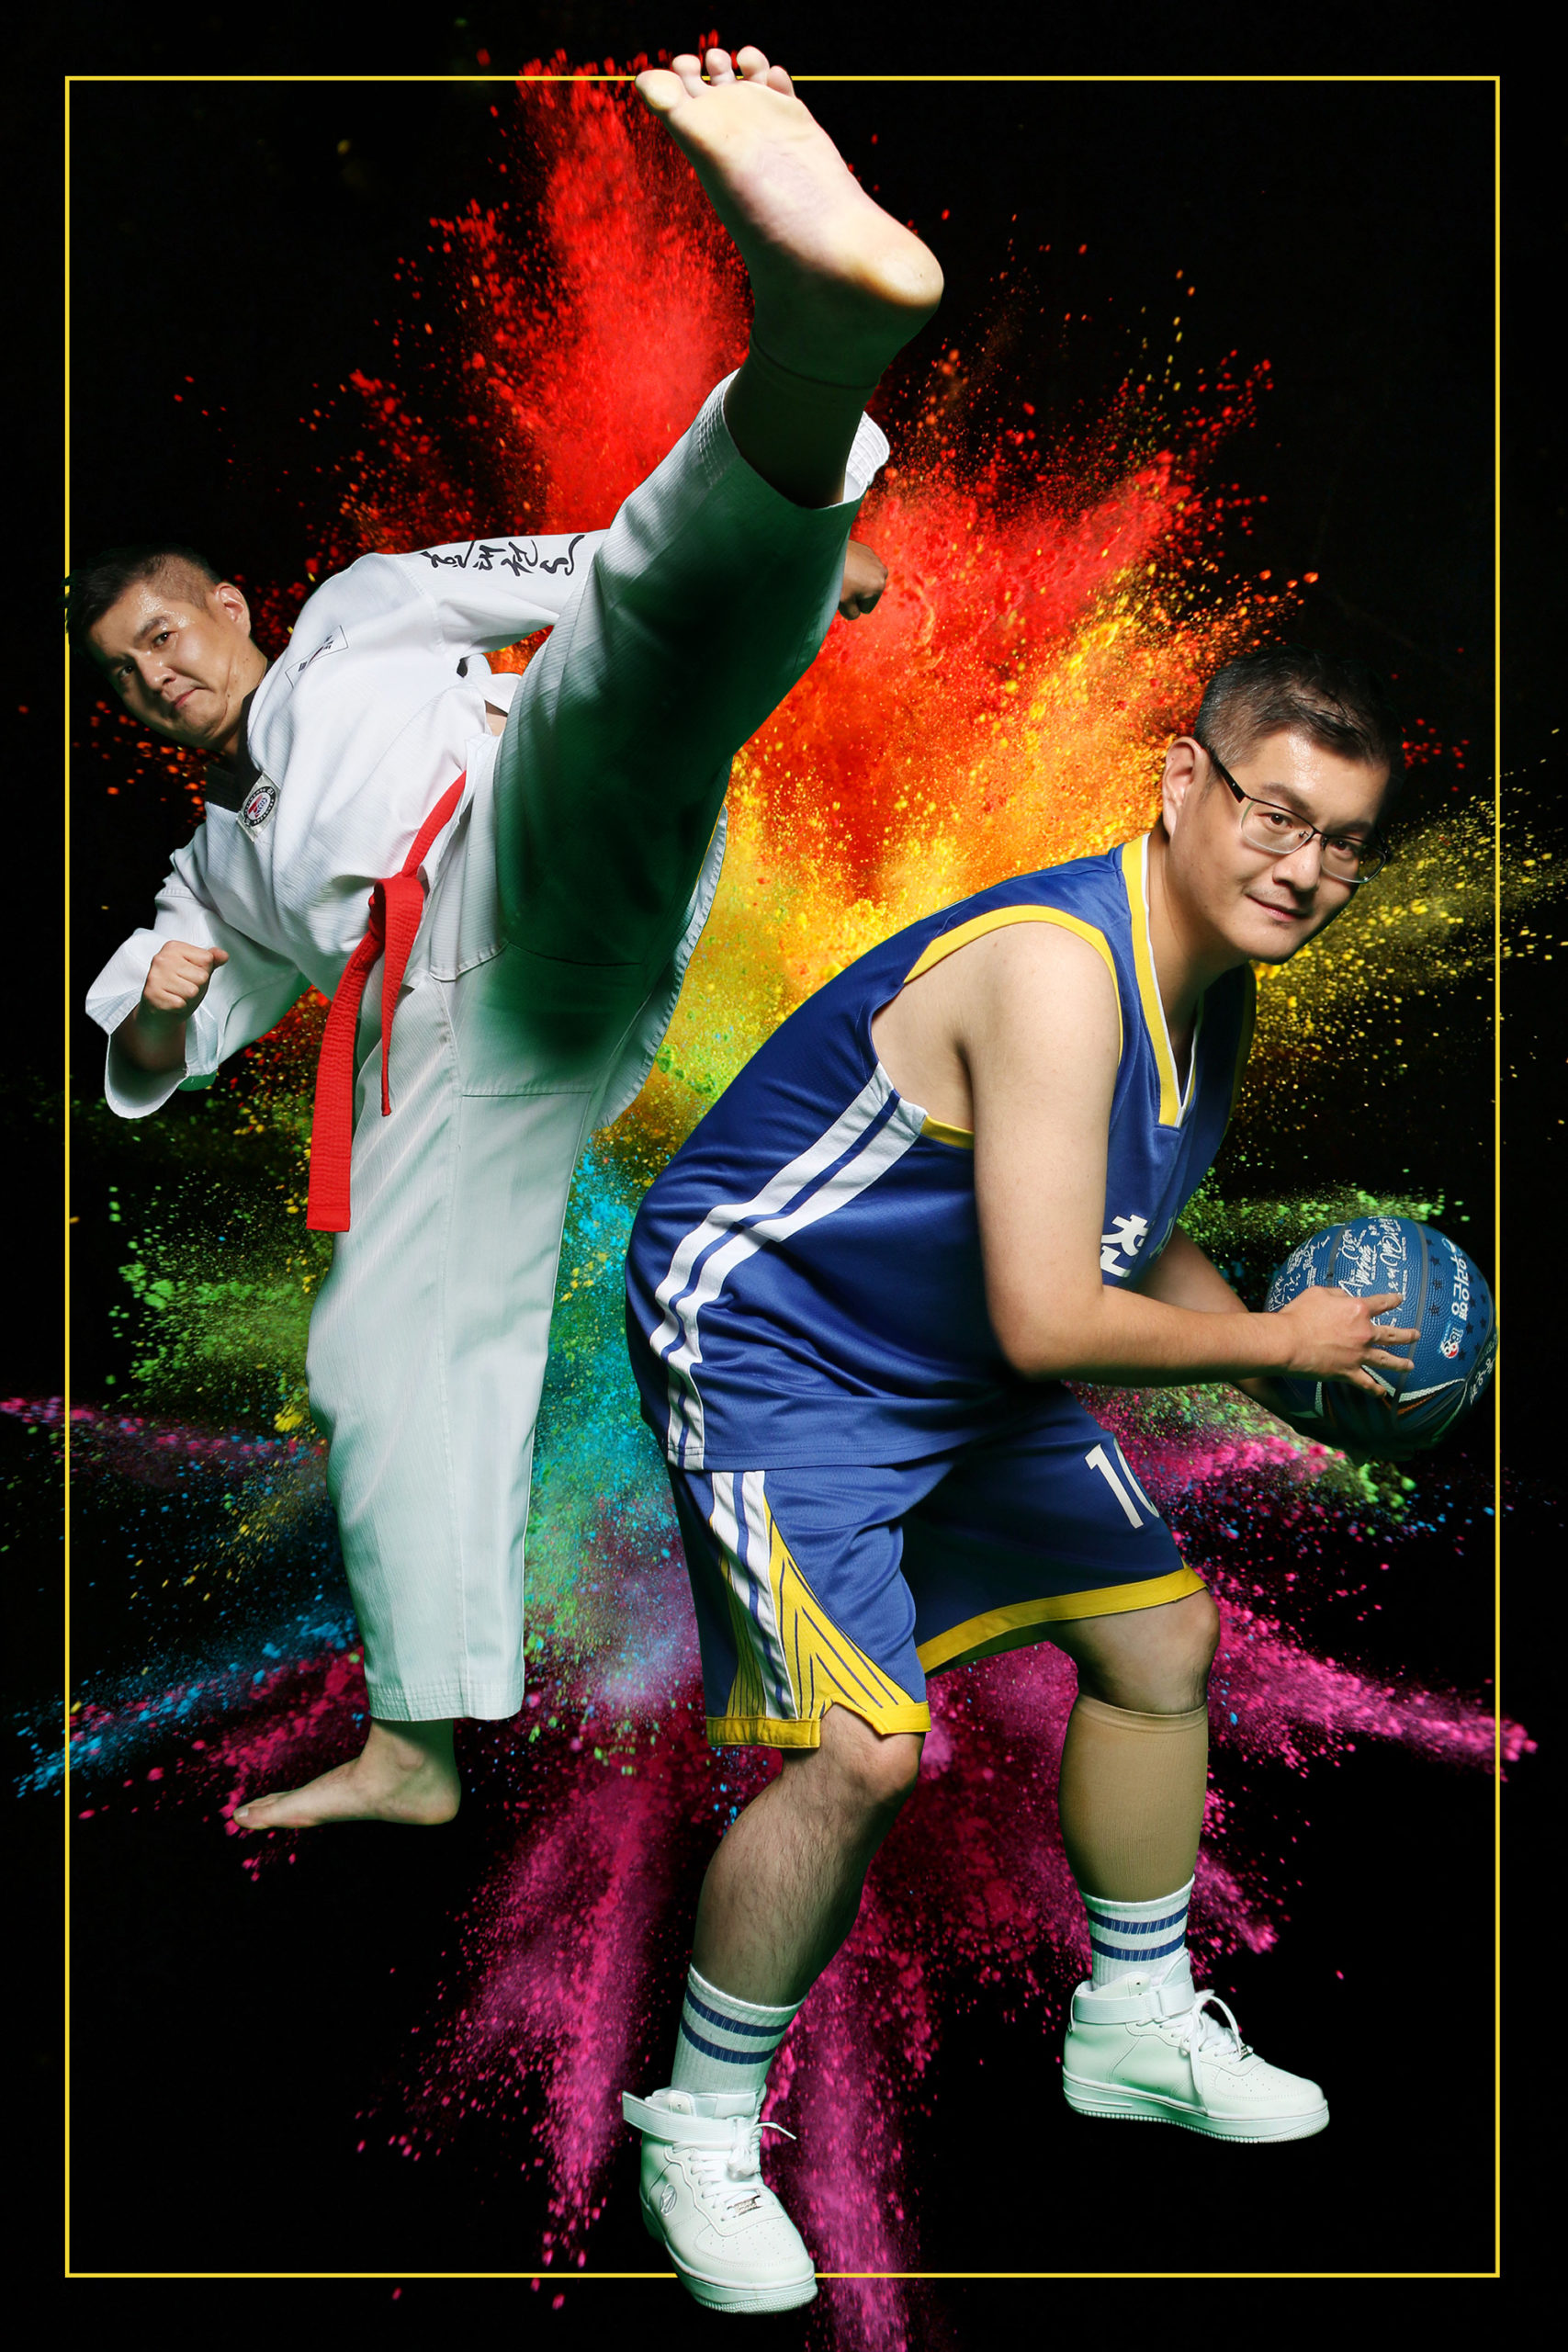 Hobin in takewondo uniform doing a high kick and Hobin in a basketball jersey holding a basketball with a colourful background